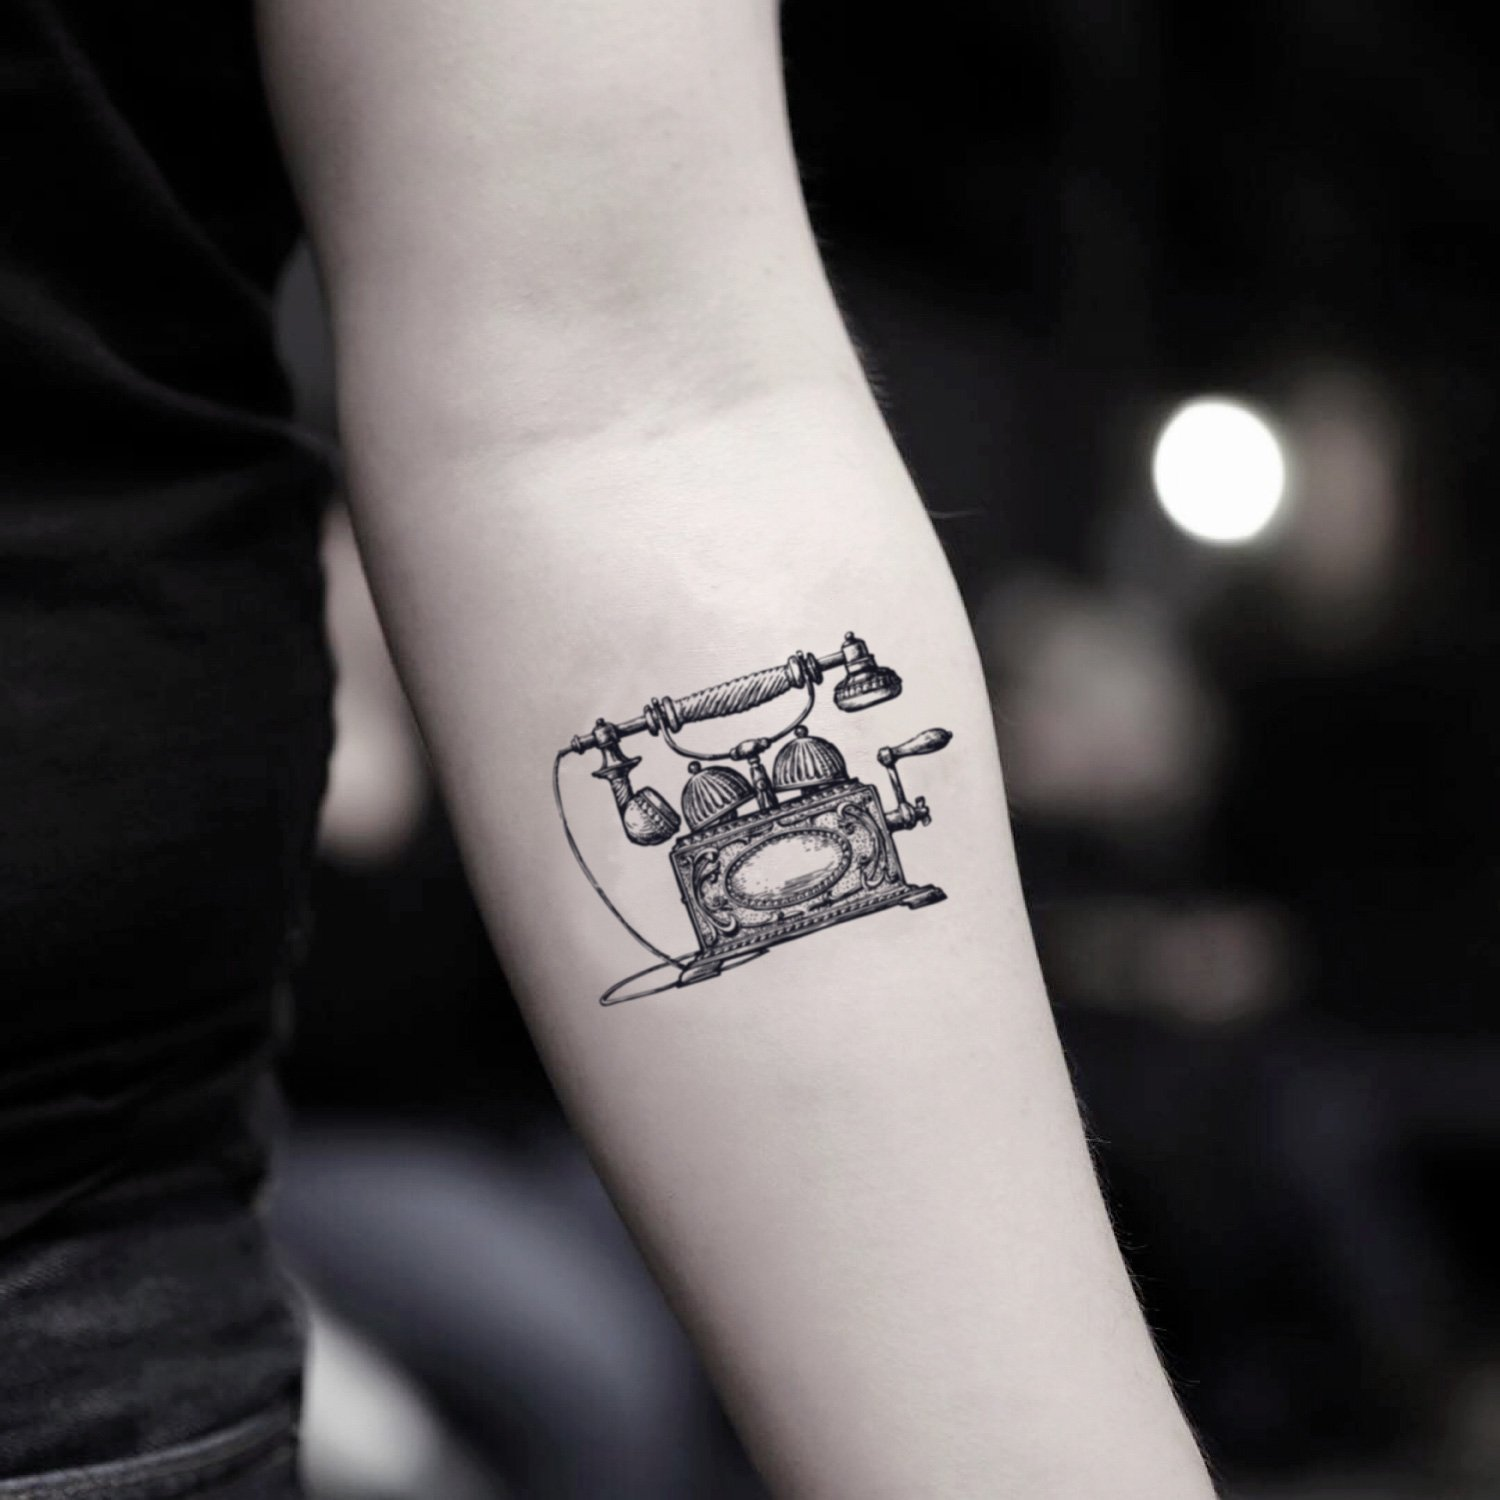 Tips to Make A Vintage Temporary Tattoo Last for More Time